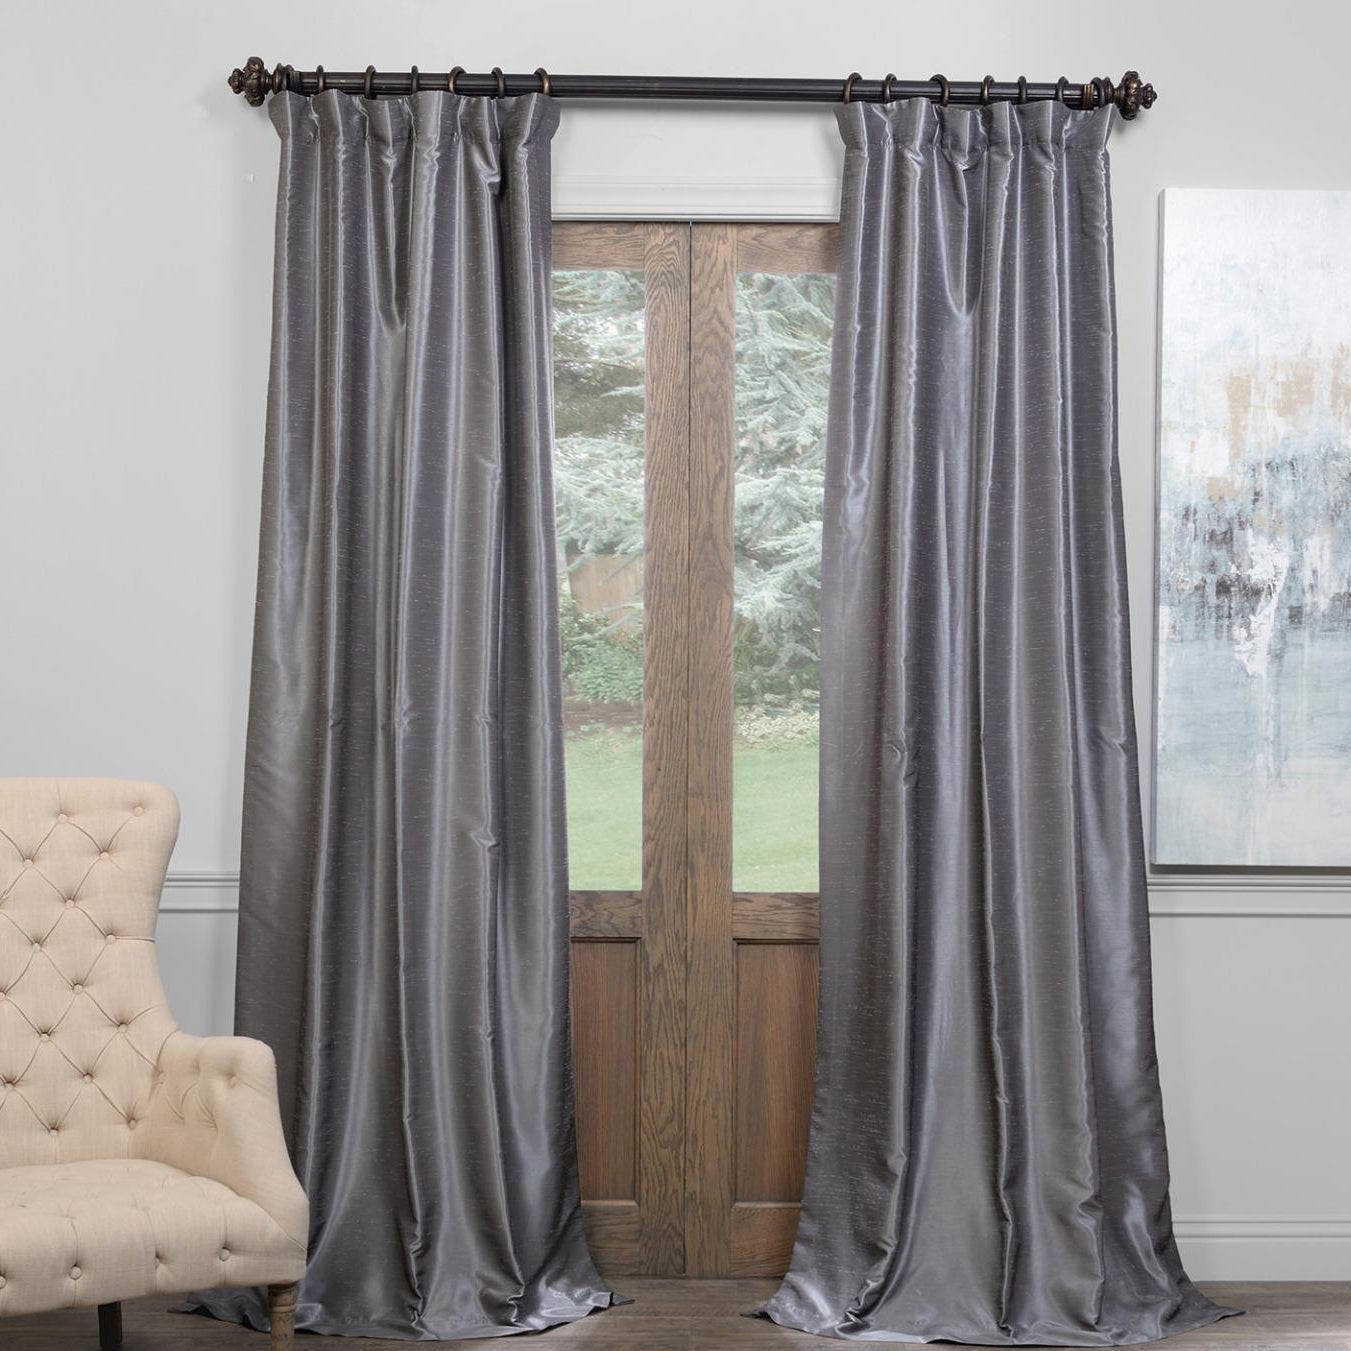 Exclusive Fabrics True Blackout Vintage Textured Faux Dupioni Silk Curtain Panel With Storm Grey Vintage Faux Textured Dupioni Single Silk Curtain Panels (View 19 of 30)